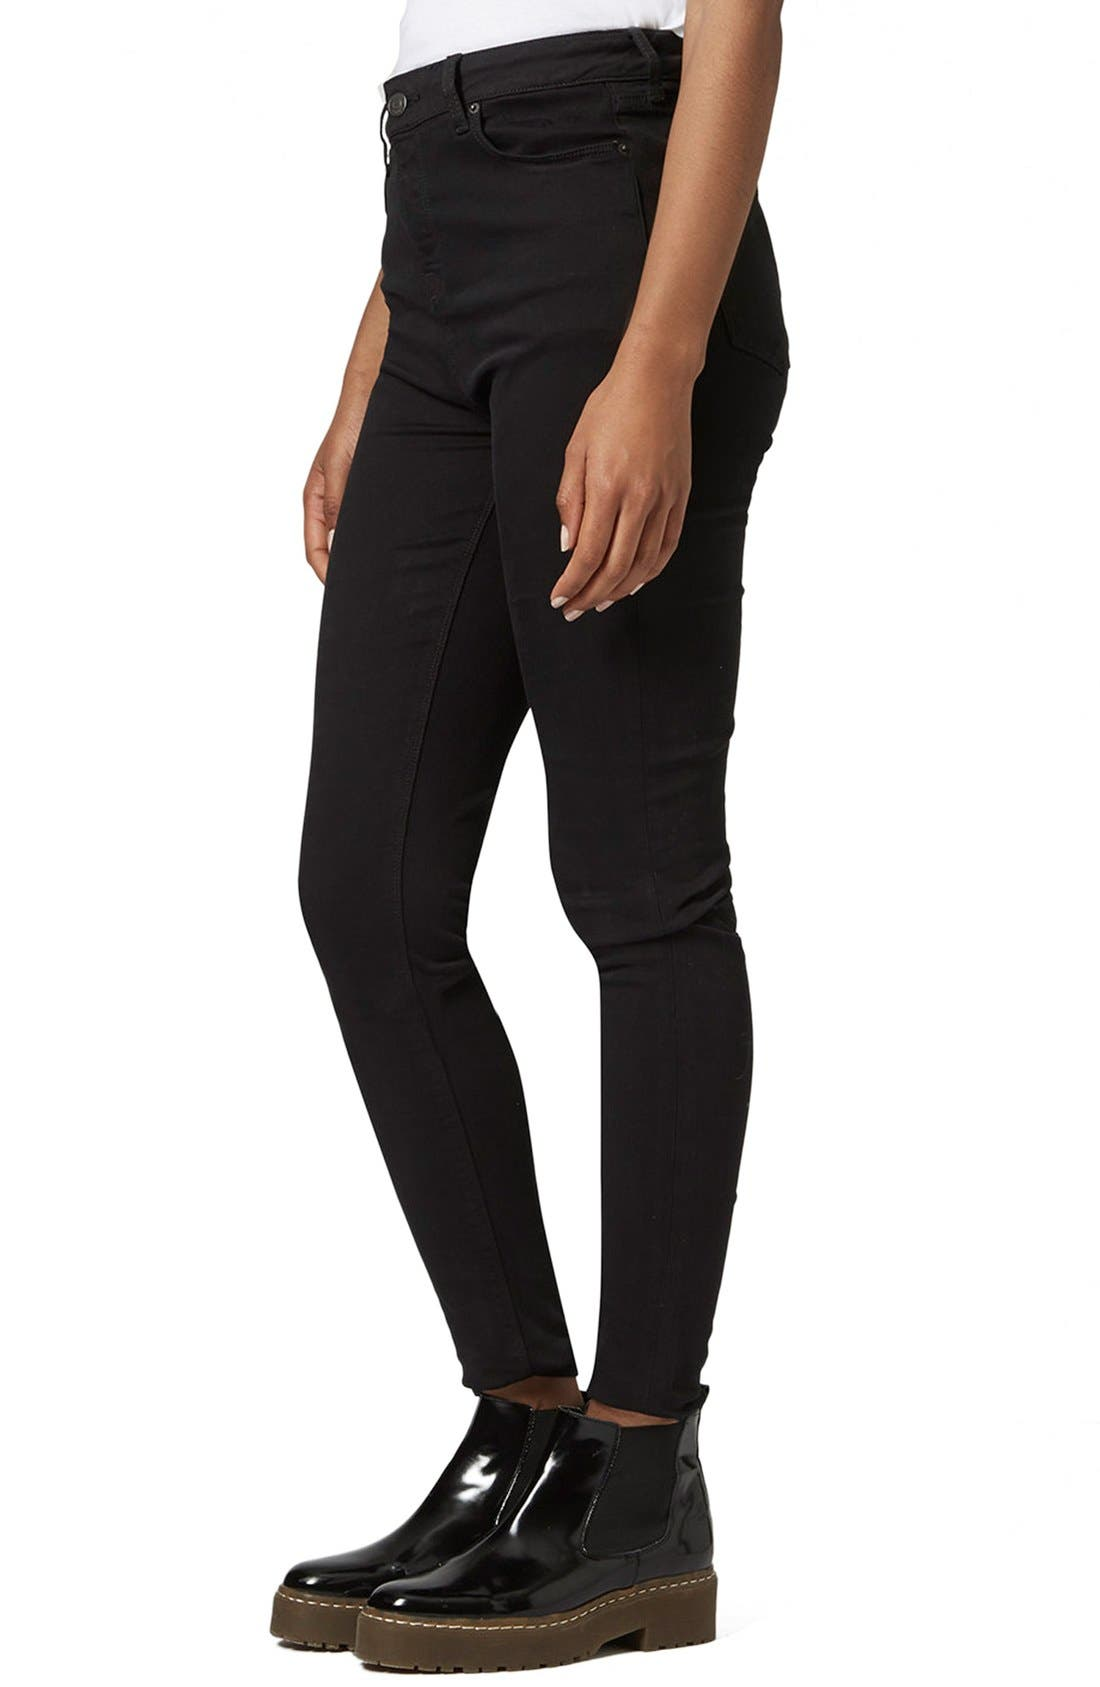 Alternate Image 1 Selected - Topshop Moto 'Jamie' High Rise Skinny Jeans (Black) (Tall)